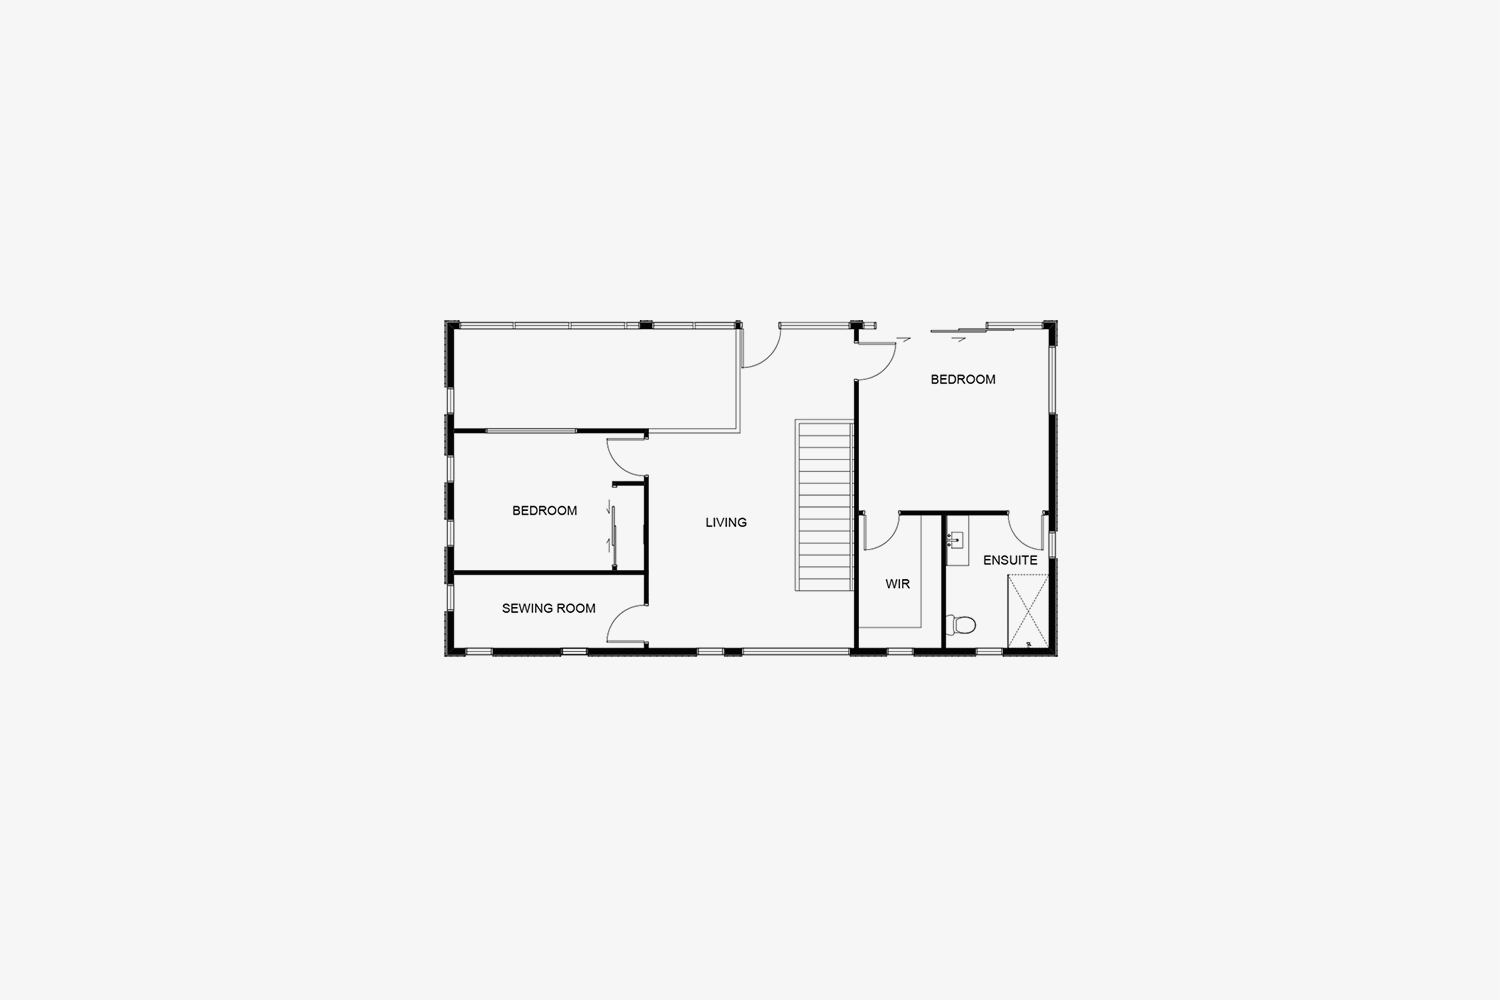 https://www.benchmarkhomes.co.nz/wp-content/uploads/2021/07/Projects-Ross-Plan-2-1500-x-1000-High-Res.jpg